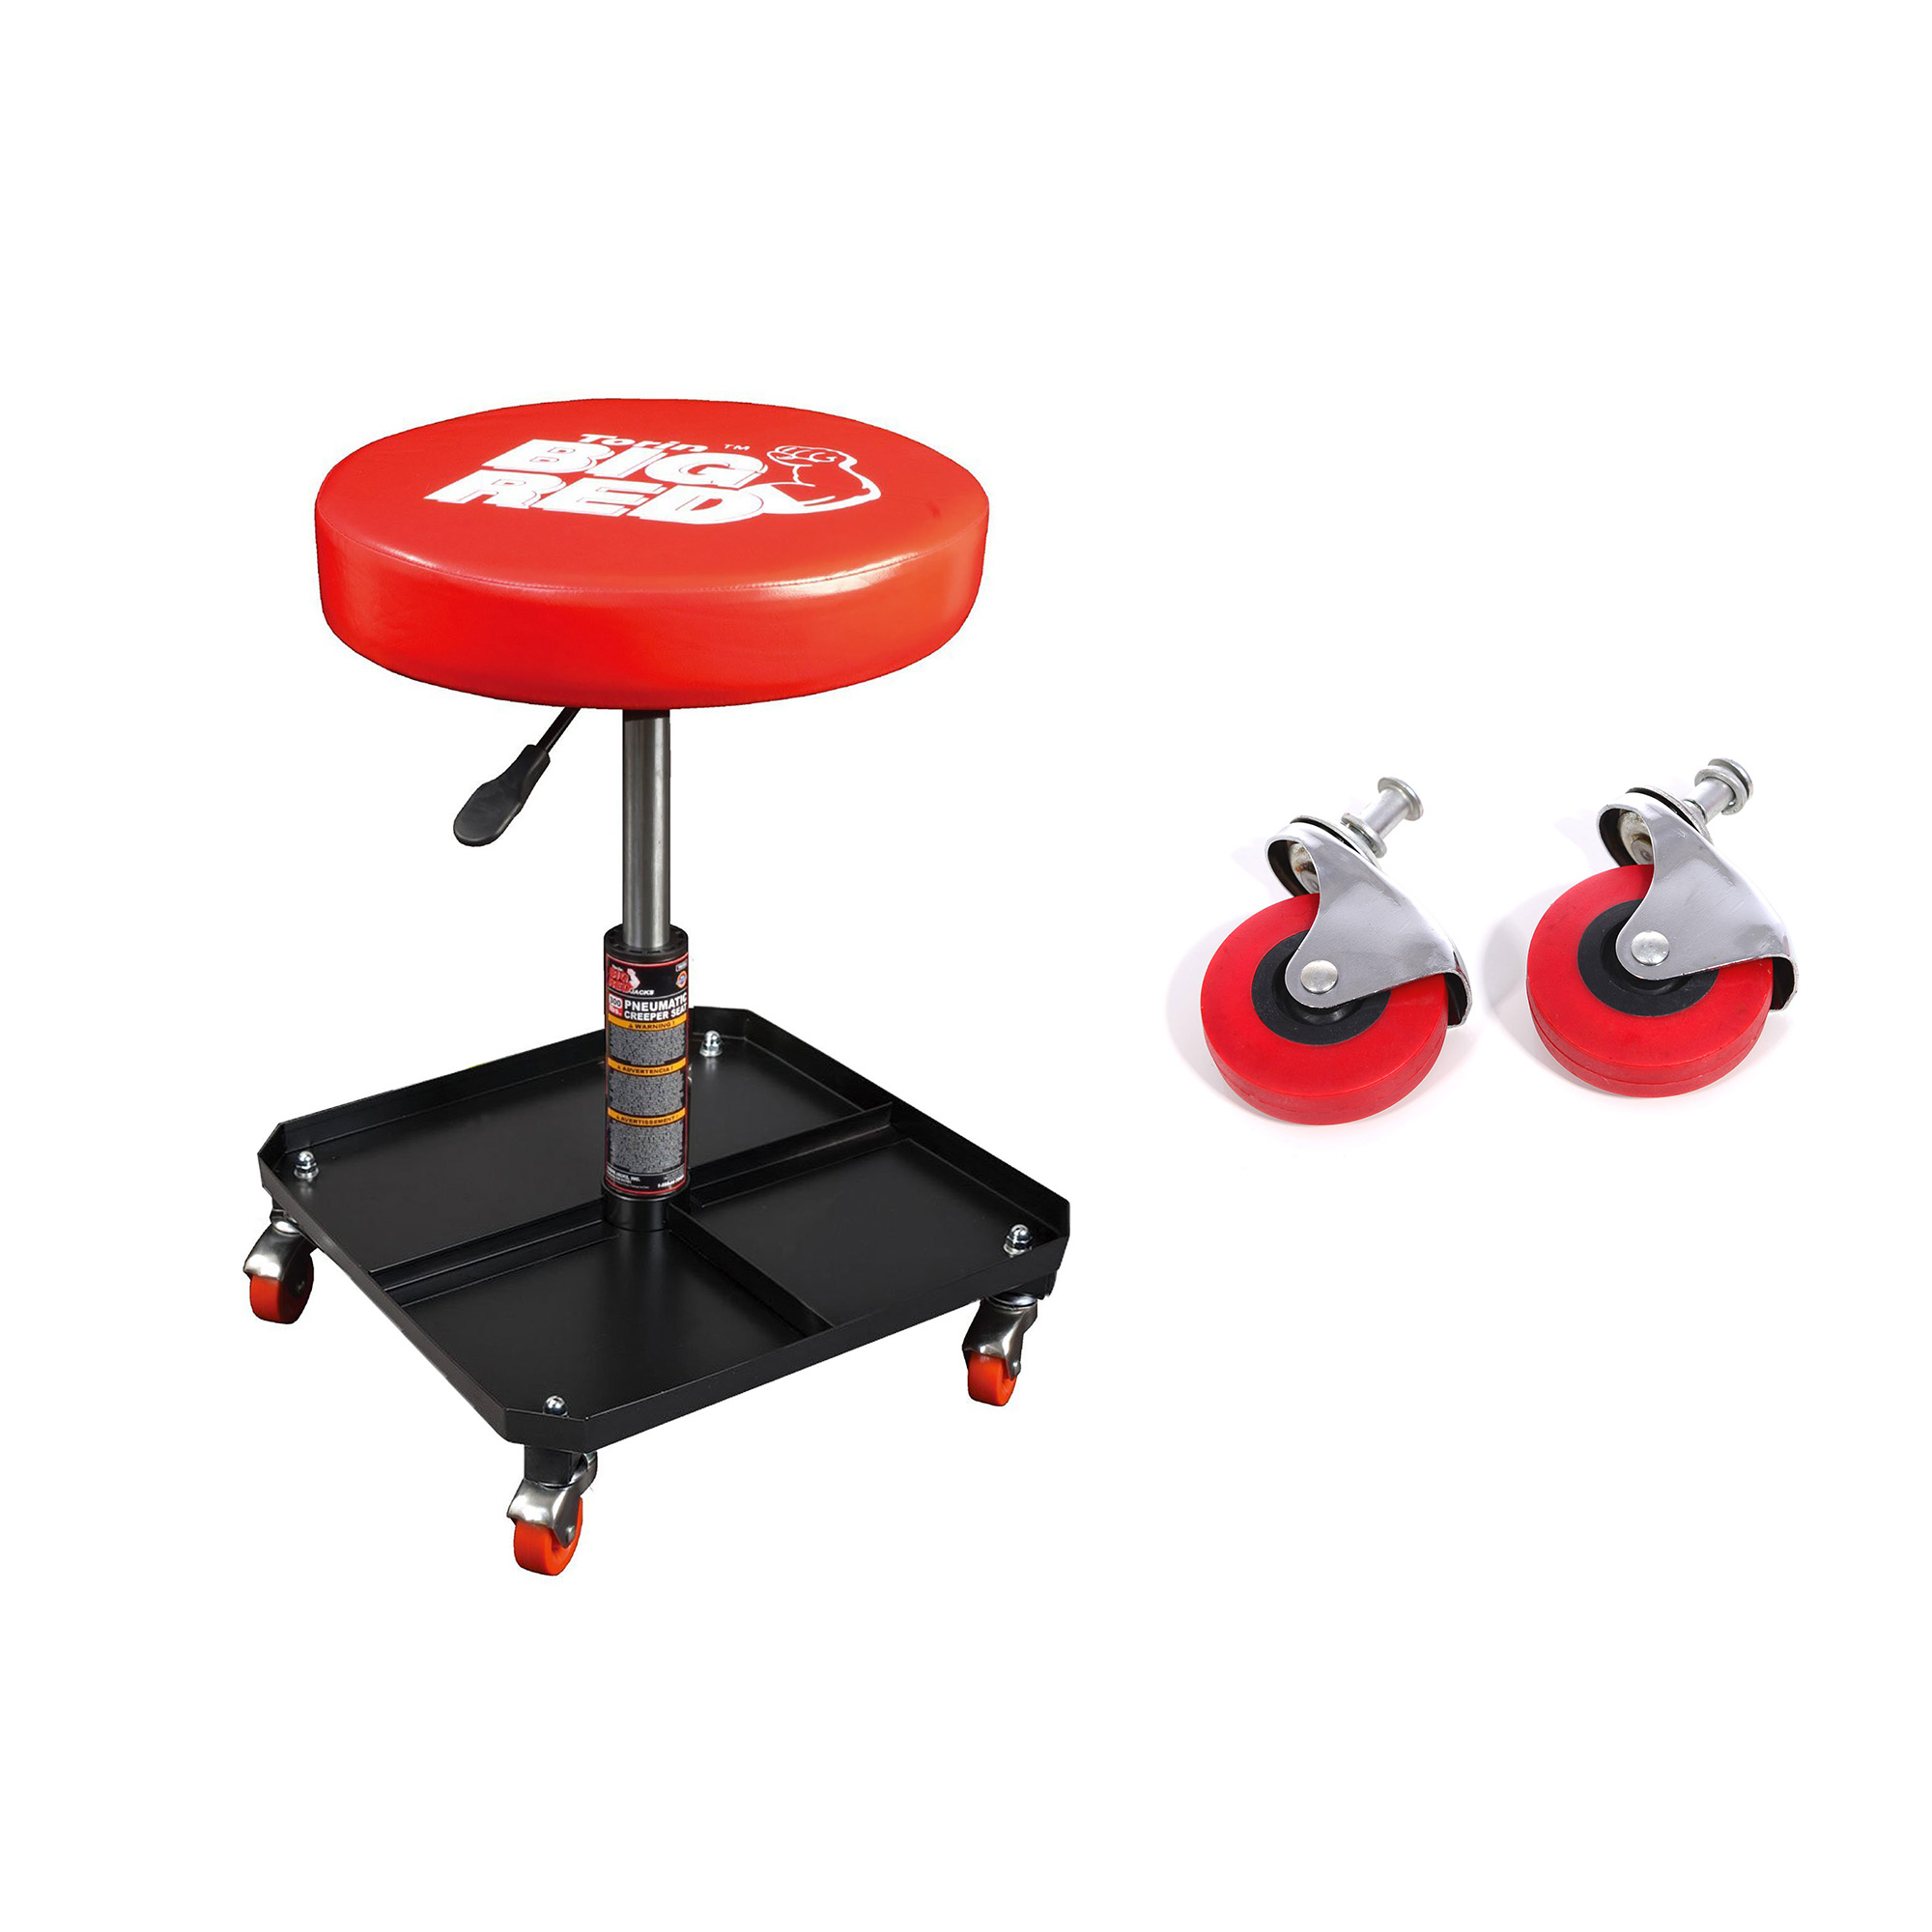 Fits: Creepers, Mechanic Carts, Stools 1 Pair 2.5 Wheels with Posts Torin Big Red Replacement Swivel Casters